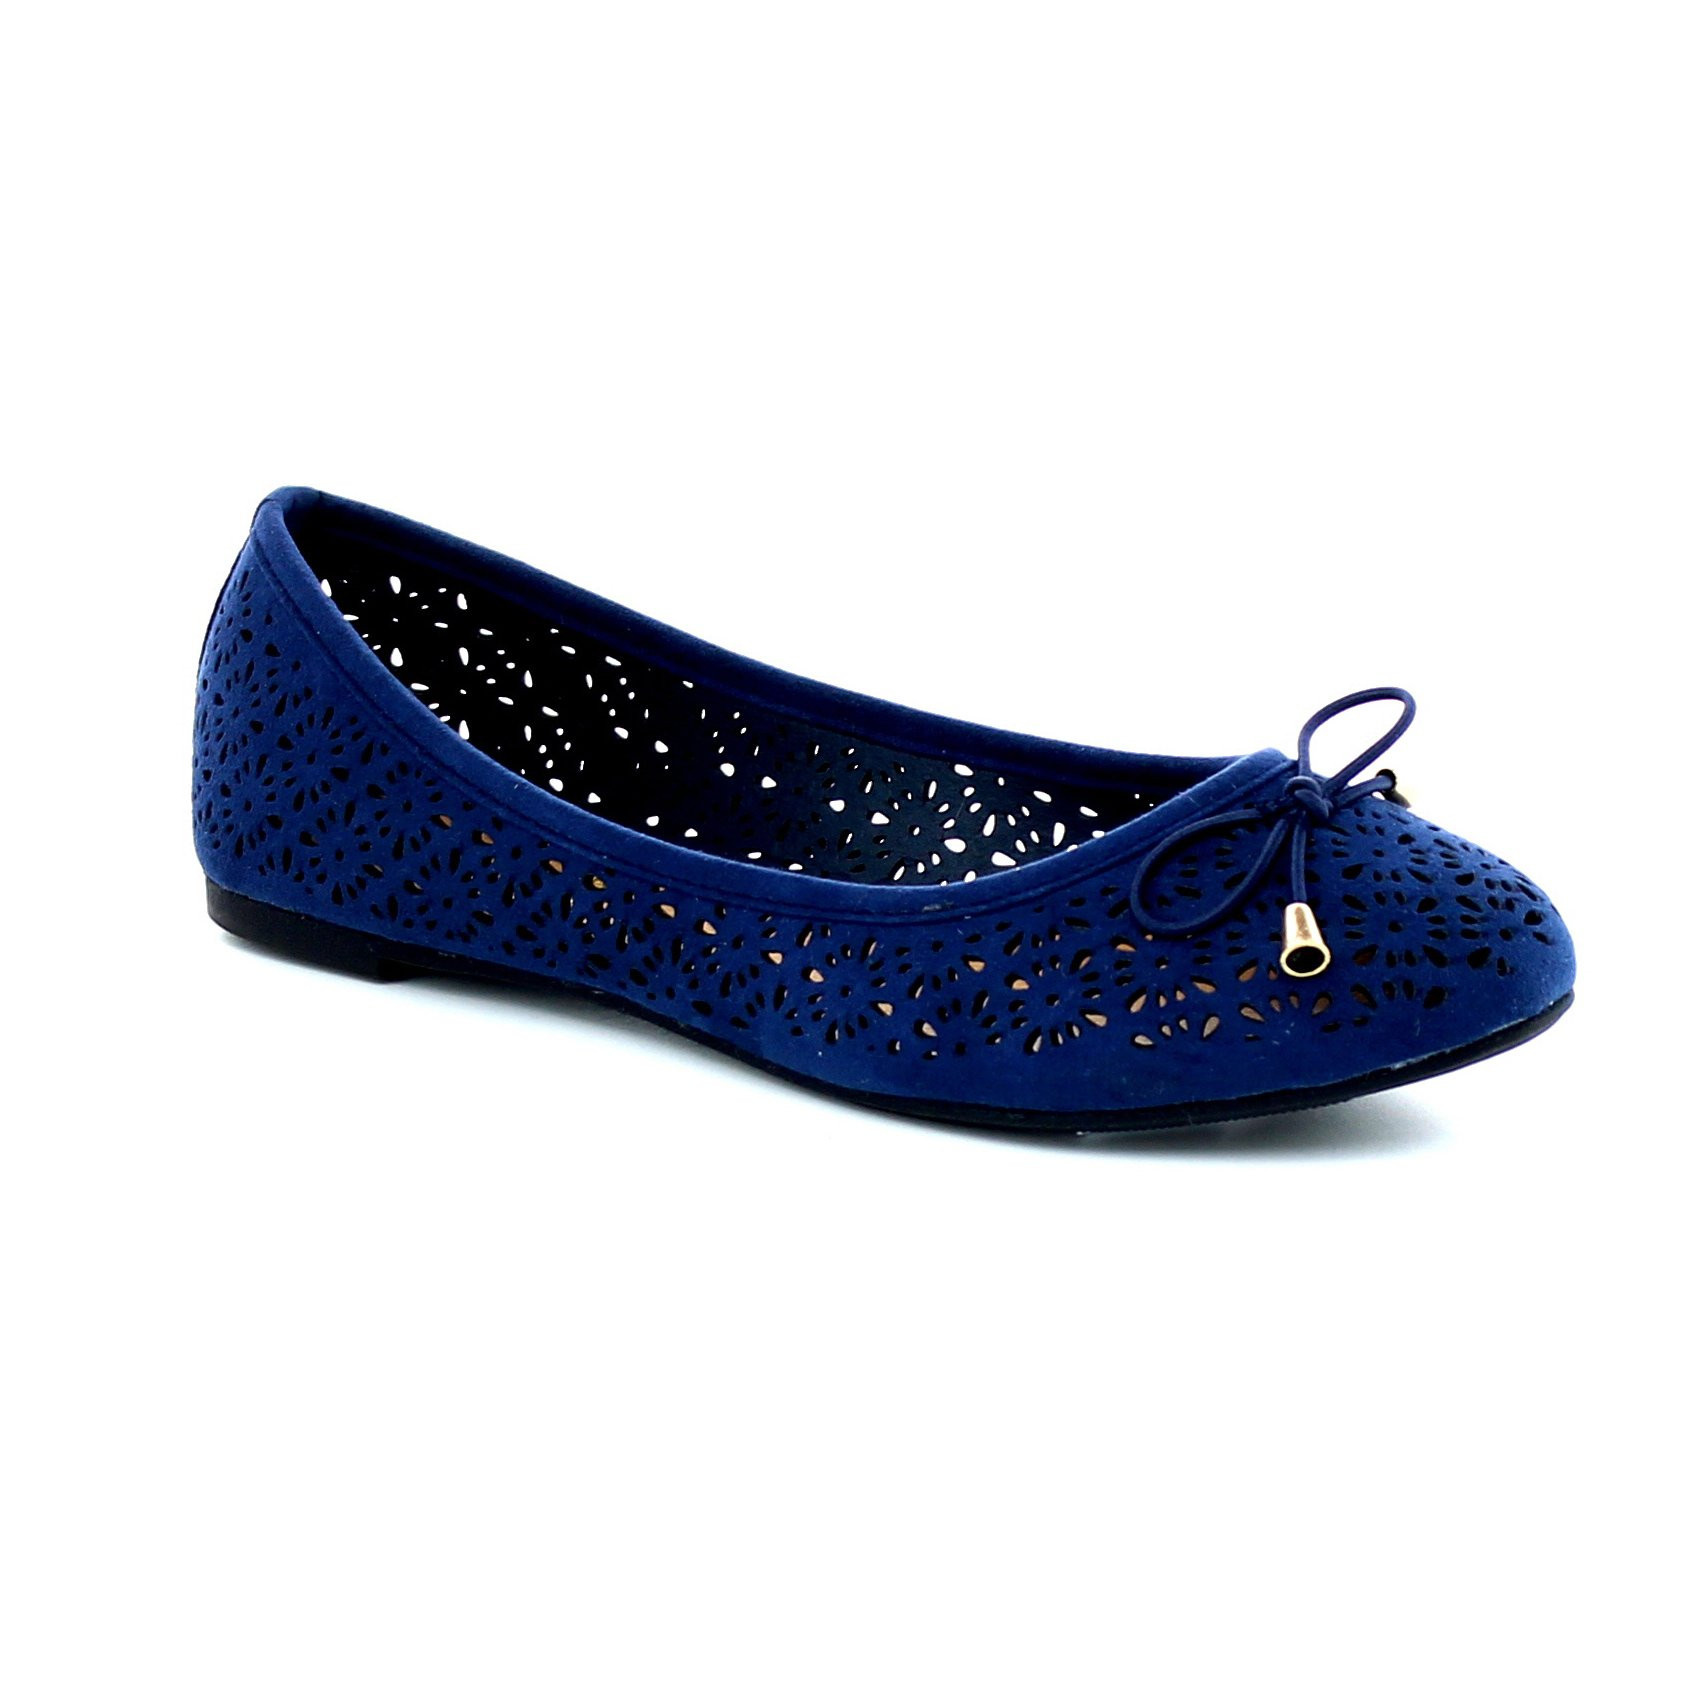 Women's Slip On Ballet Flats Perforated Cut Out Bow Tie Shoes Ballerina Comfort Slippers FC05 Navy 9